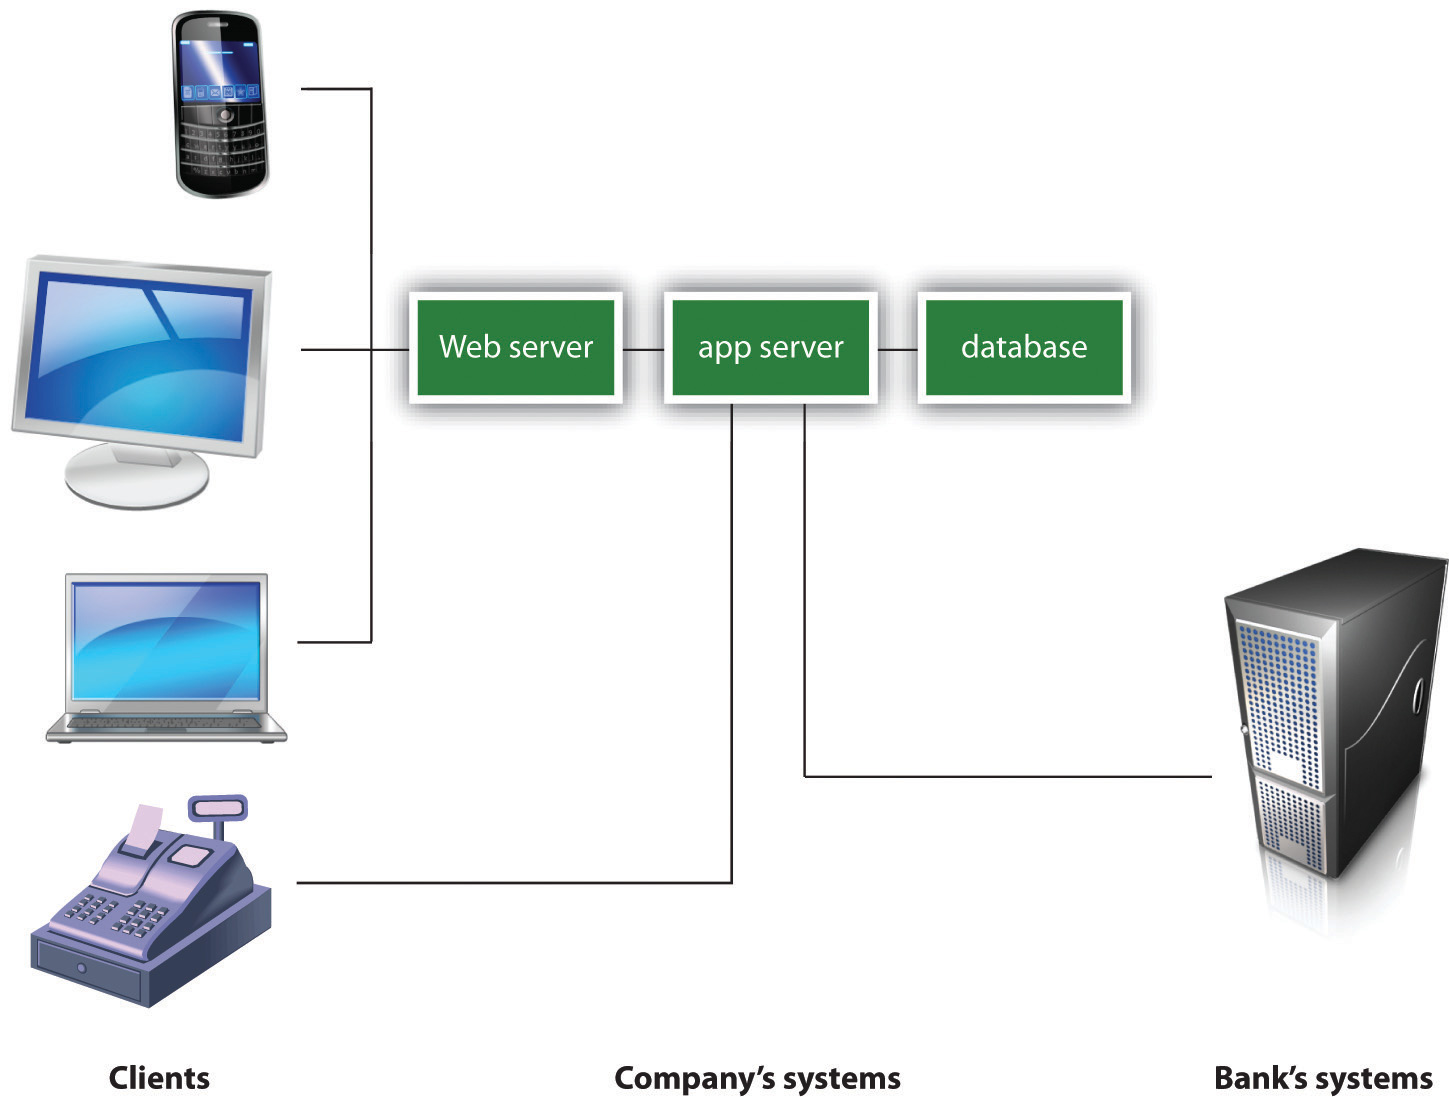 In this multitiered distributed system, client browsers on various machines (desktop, laptop, mobile) access the system through the Web server. The cash register doesn't use a Web browser, so instead the cash register logic is programmed to directly access the services it needs from the app server. Web services accessed from the app server may be asked to do a variety of functions, including perform calculations, access corporate databases, or even make requests from servers at other firms (for example, to verify a customer's credit card).